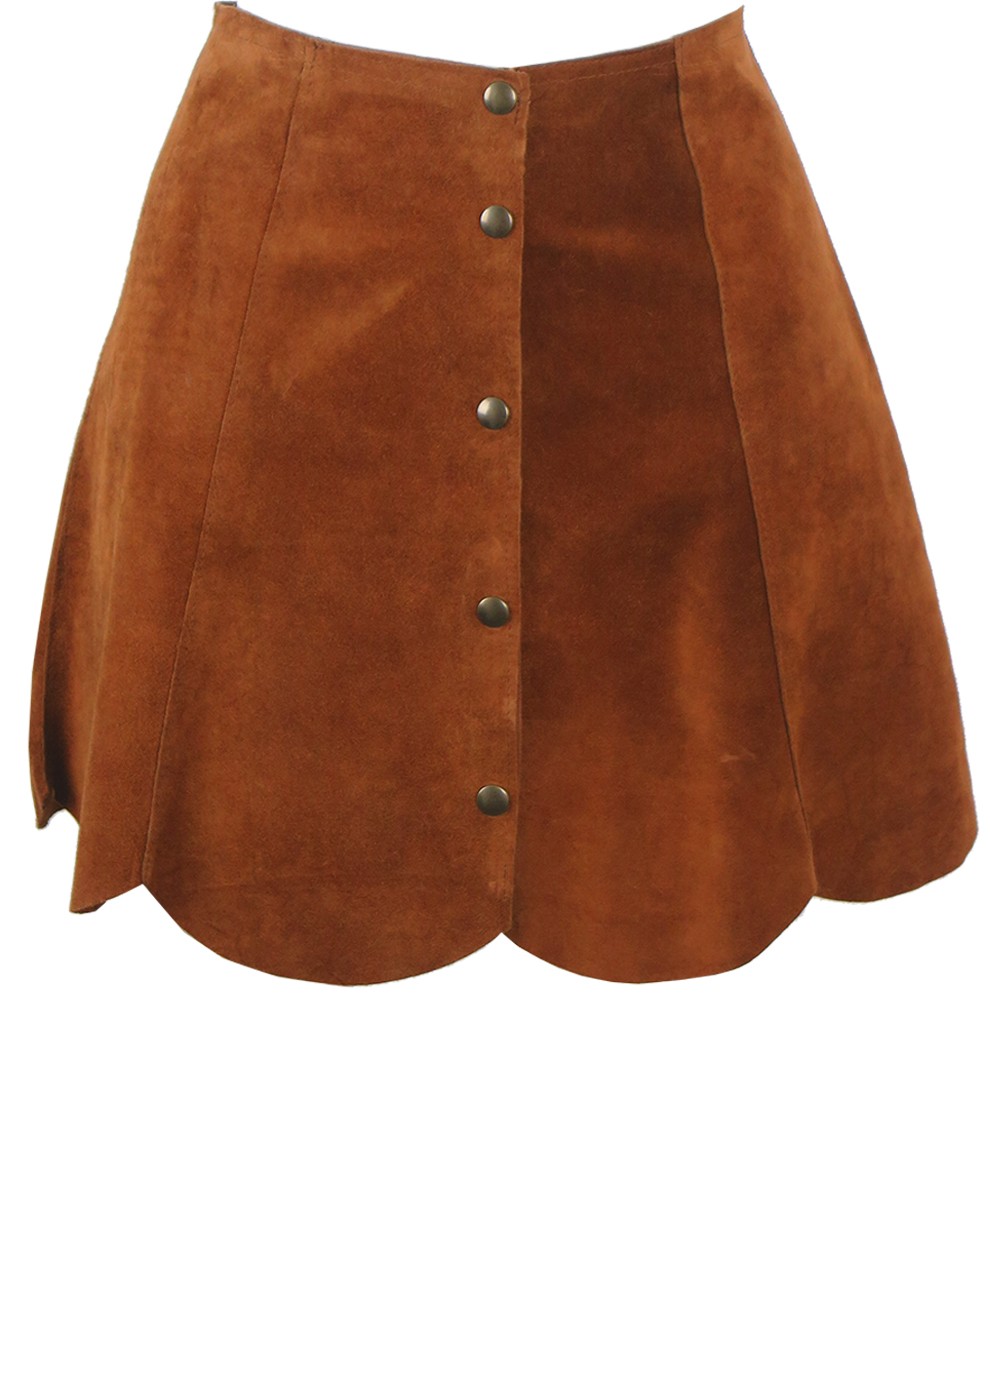 0cbc8d3ff Tan Brown Suede Mini Skirt with Scallop Hem & Popper Fastenings – S ...